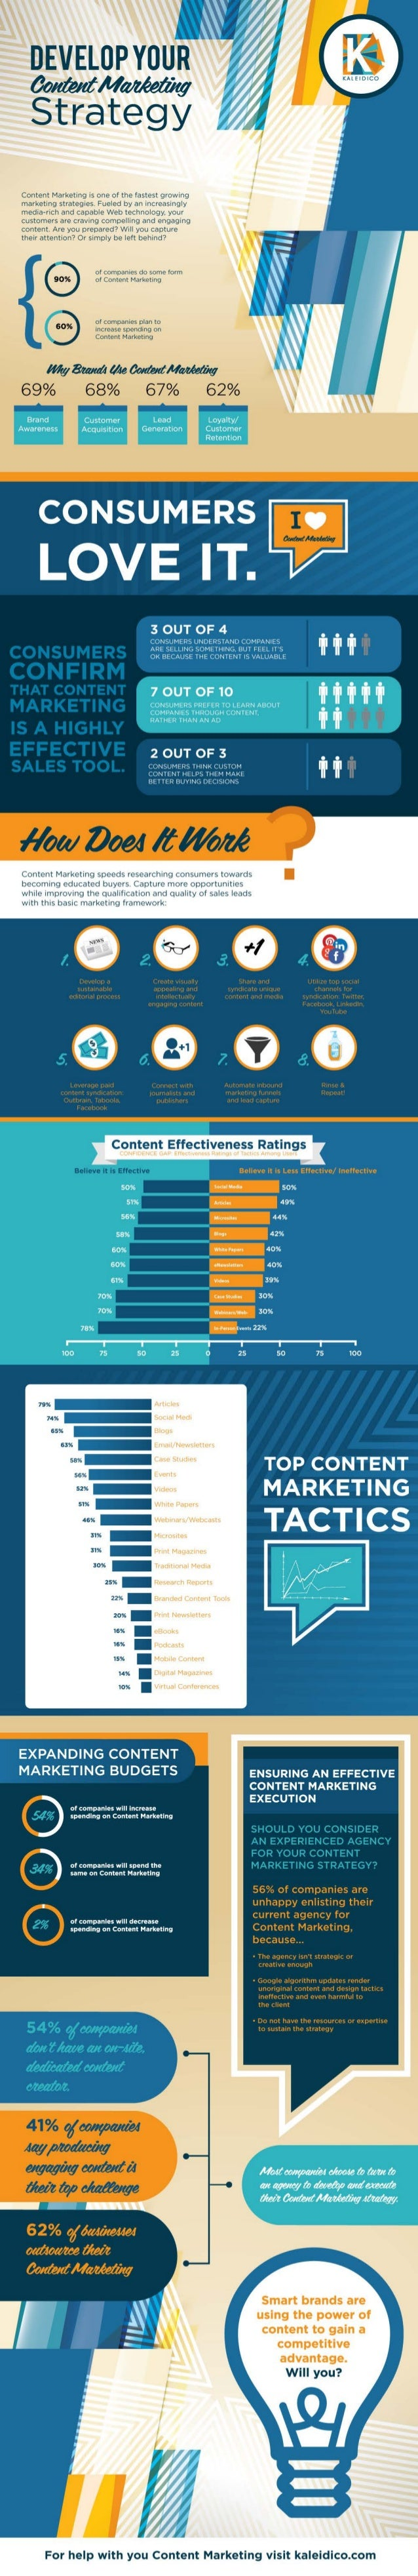 Develop Your Content Marketing Strategy